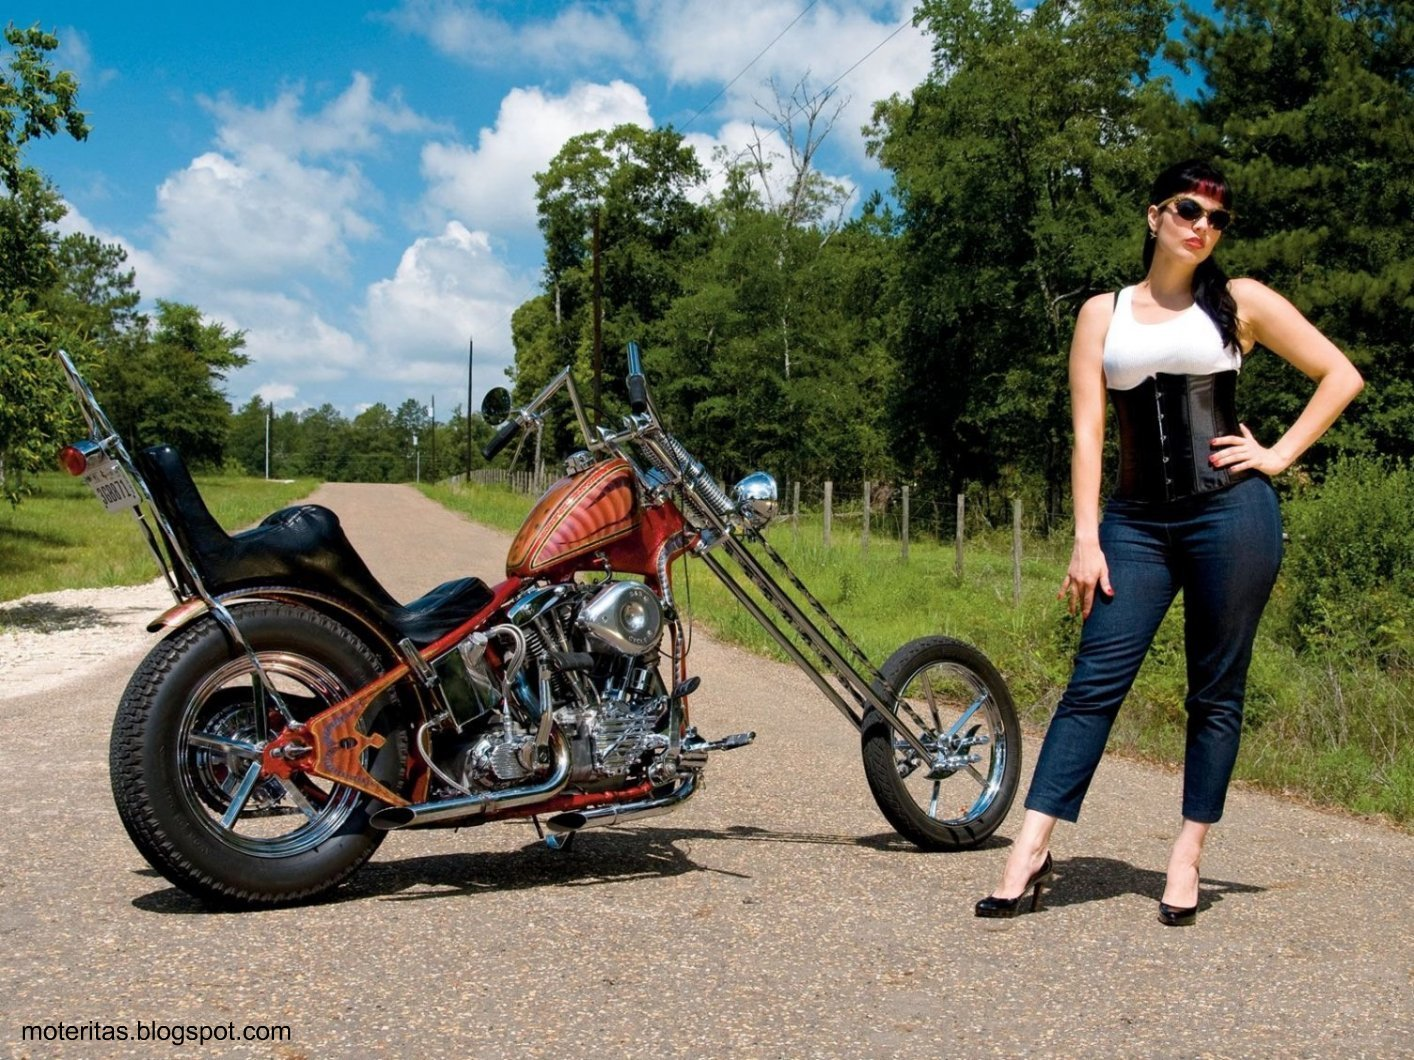 2366 Sacoche Laterale Solo Cuir Jack Daniel S Bobbers Choppers Harley Custom 3662907010796 furthermore 3legged Enterprises also Product product id 1920 together with Watch in addition Hd Bobber Wallpaper. on harley davidson 45 bobber